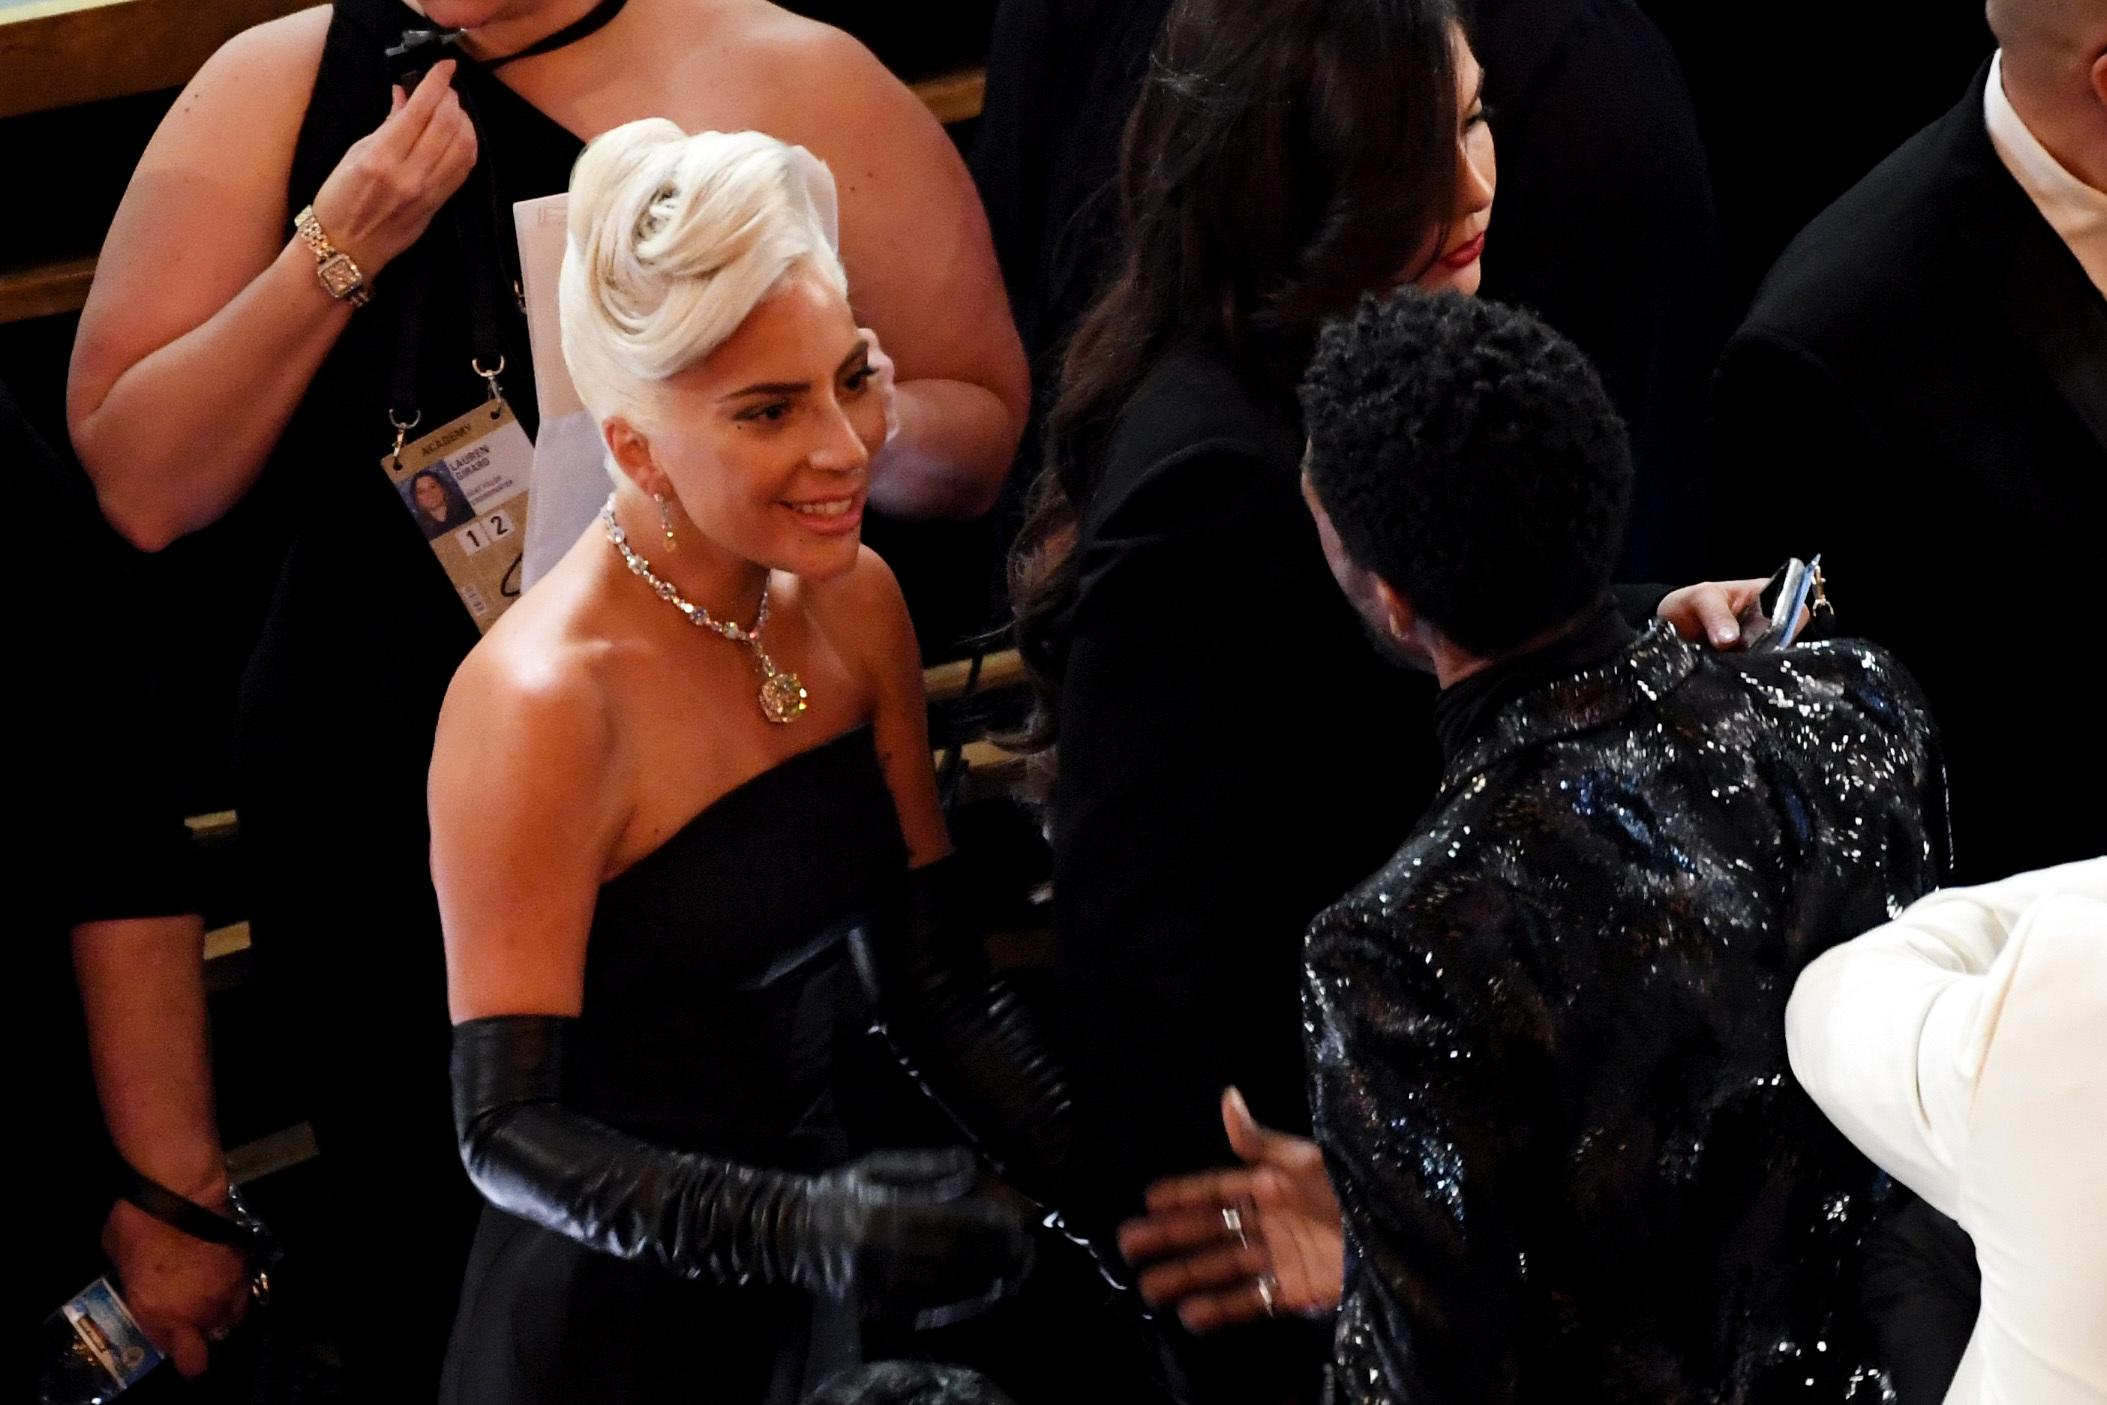 HOLLYWOOD, CALIFORNIA - FEBRUARY 24: Lady Gaga during the 91st Annual Academy Awards at Dolby Theatre on February 24, 2019 in Hollywood, California. (Photo by Kevin Winter/Getty Images)